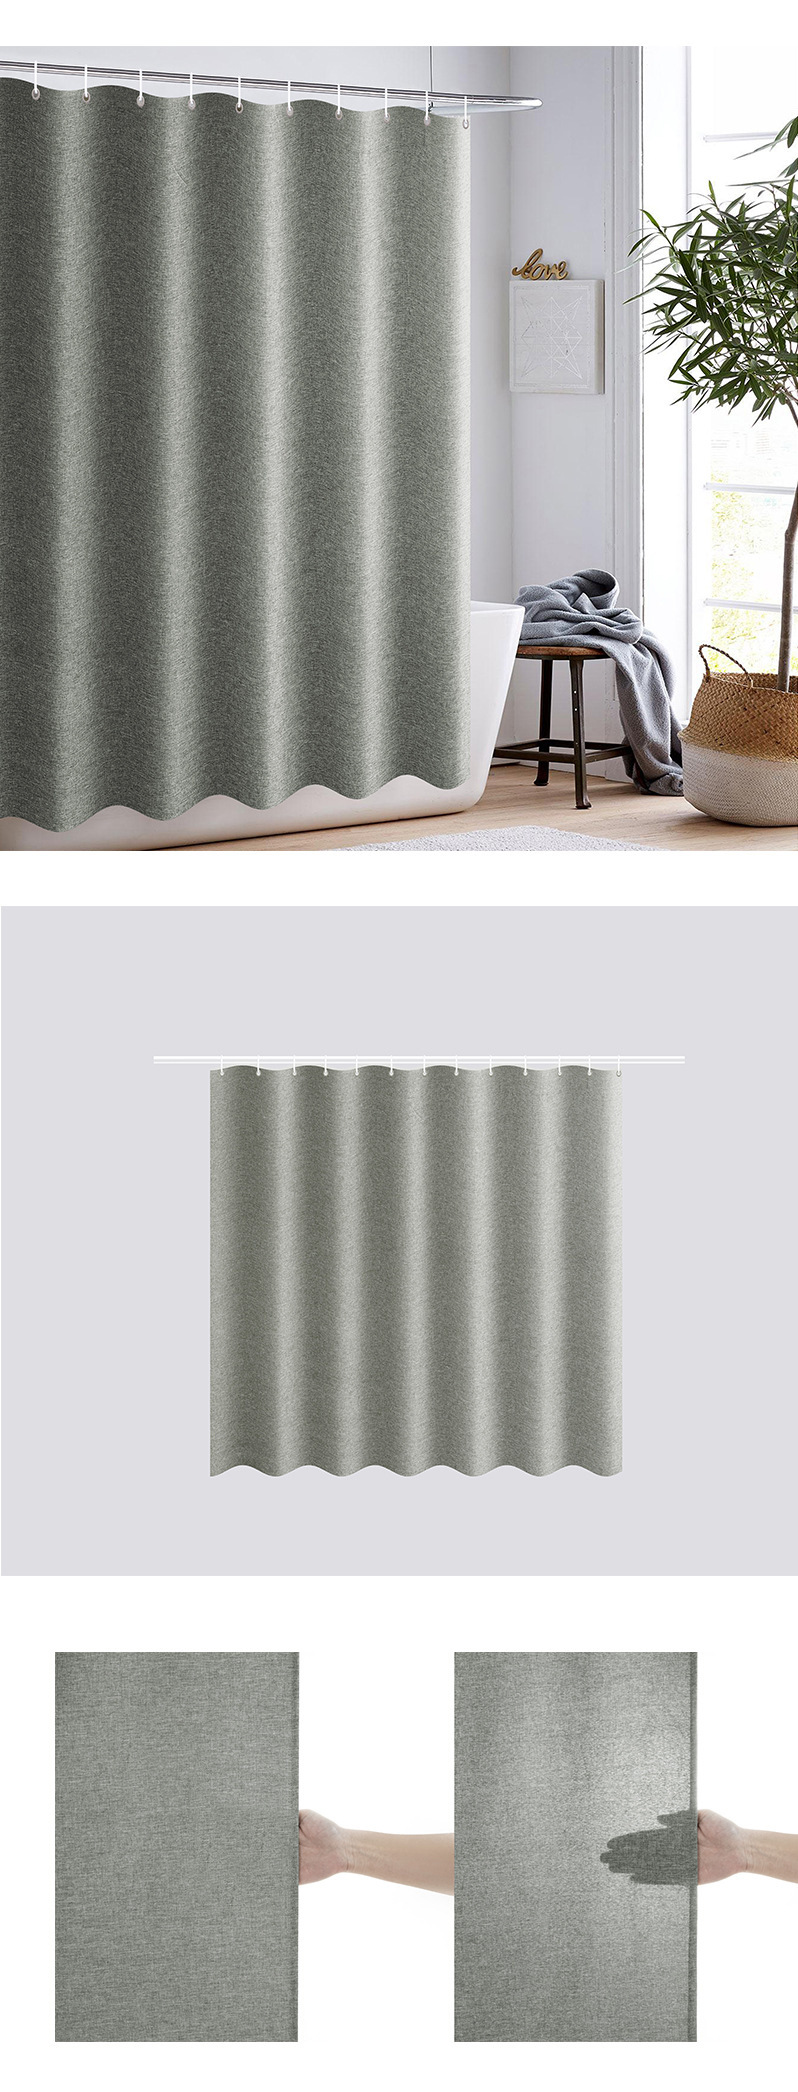 Solid Color Moisture-Proof Shower Curtain Polyester Linen Waterproof Bathroom Curtain